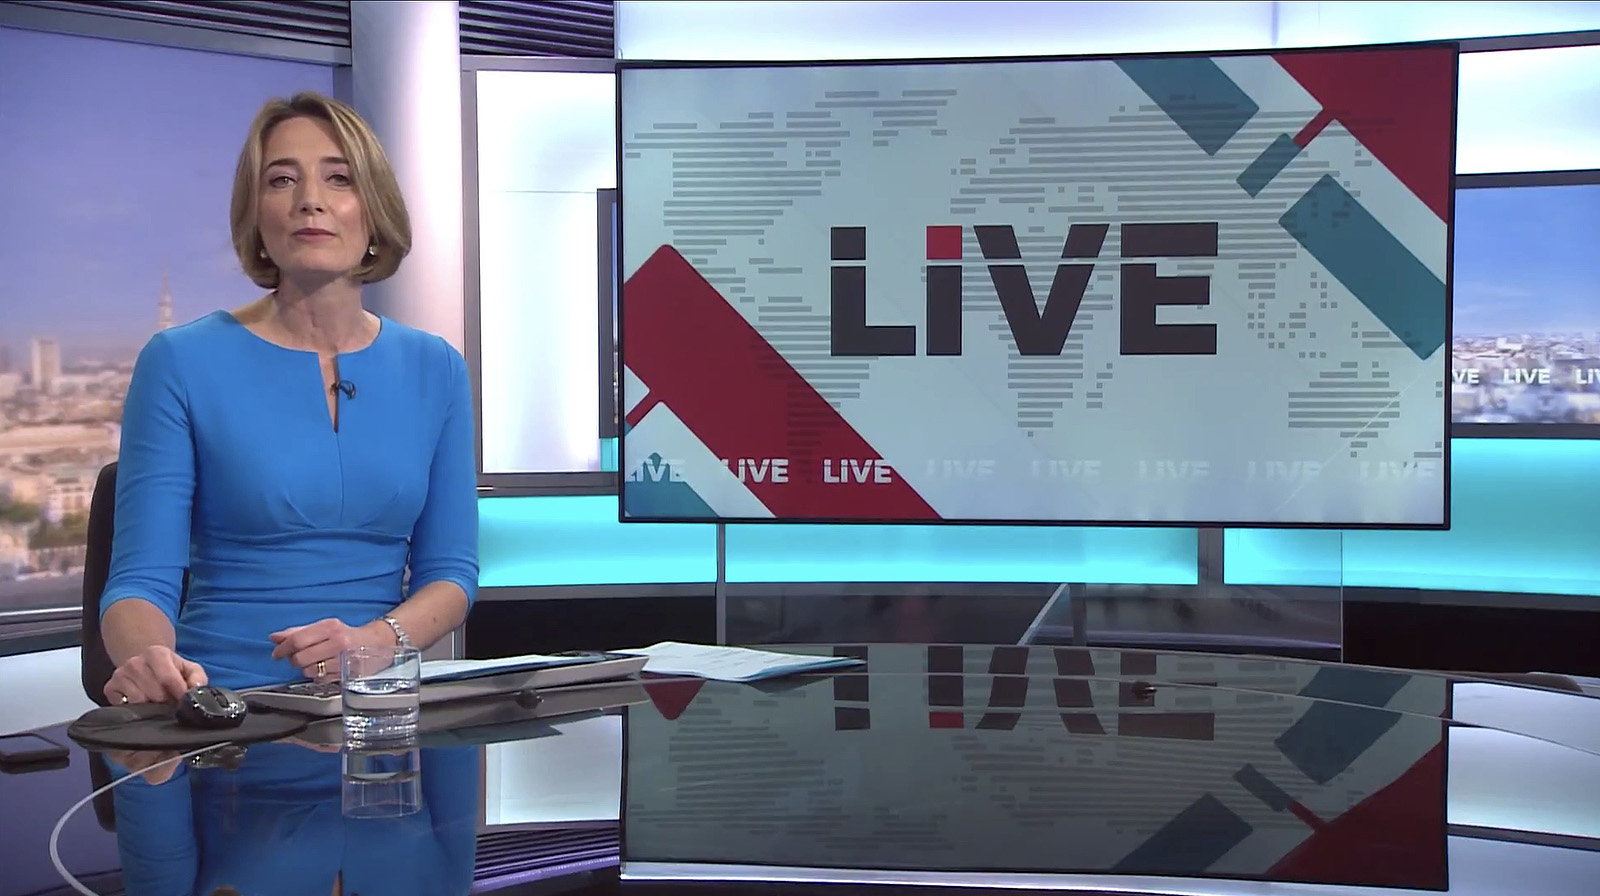 NCS_Live_Lucy-Hockings_BBC-World-News_010